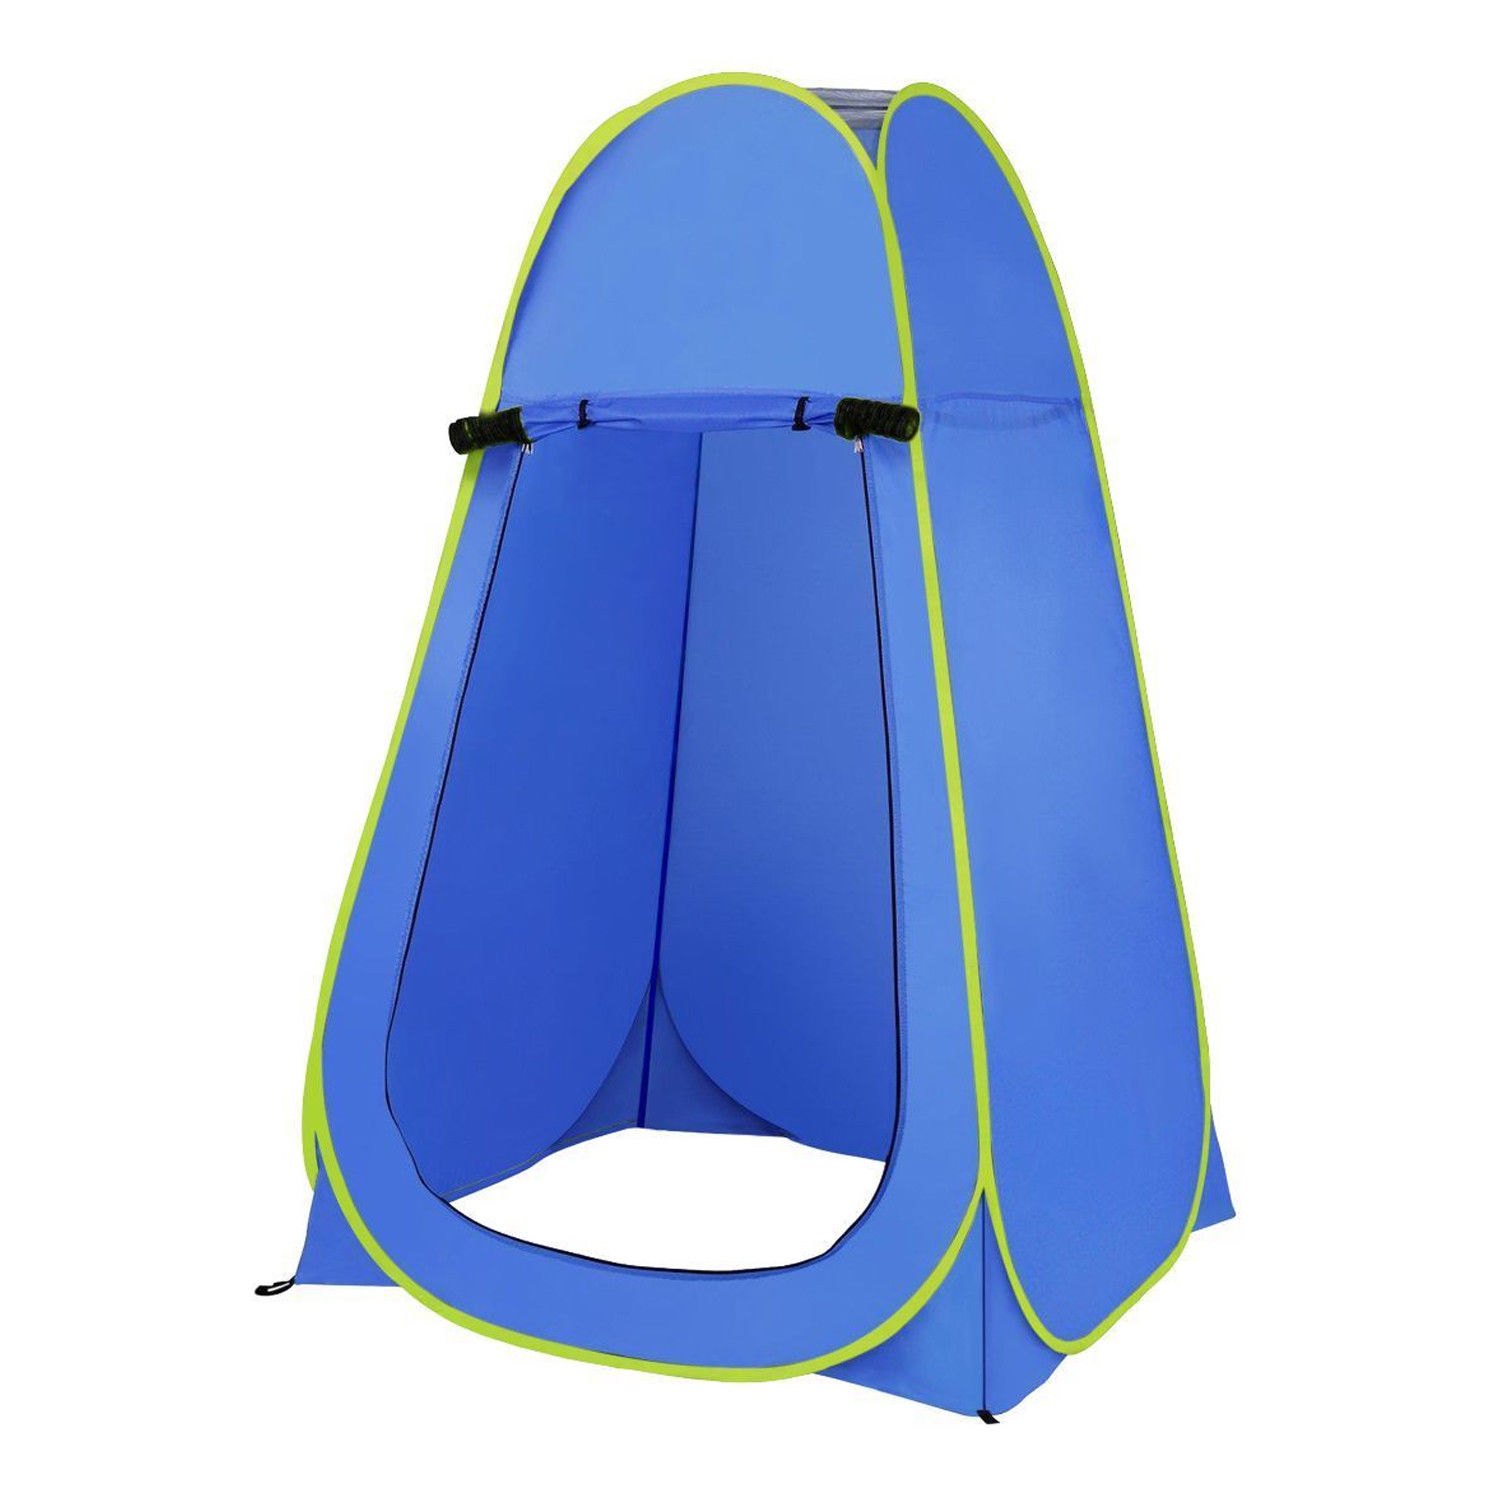 Blue Outdoor Portable Instant Pop Up Tent Camping Shower Toilet Privacy Changing Room